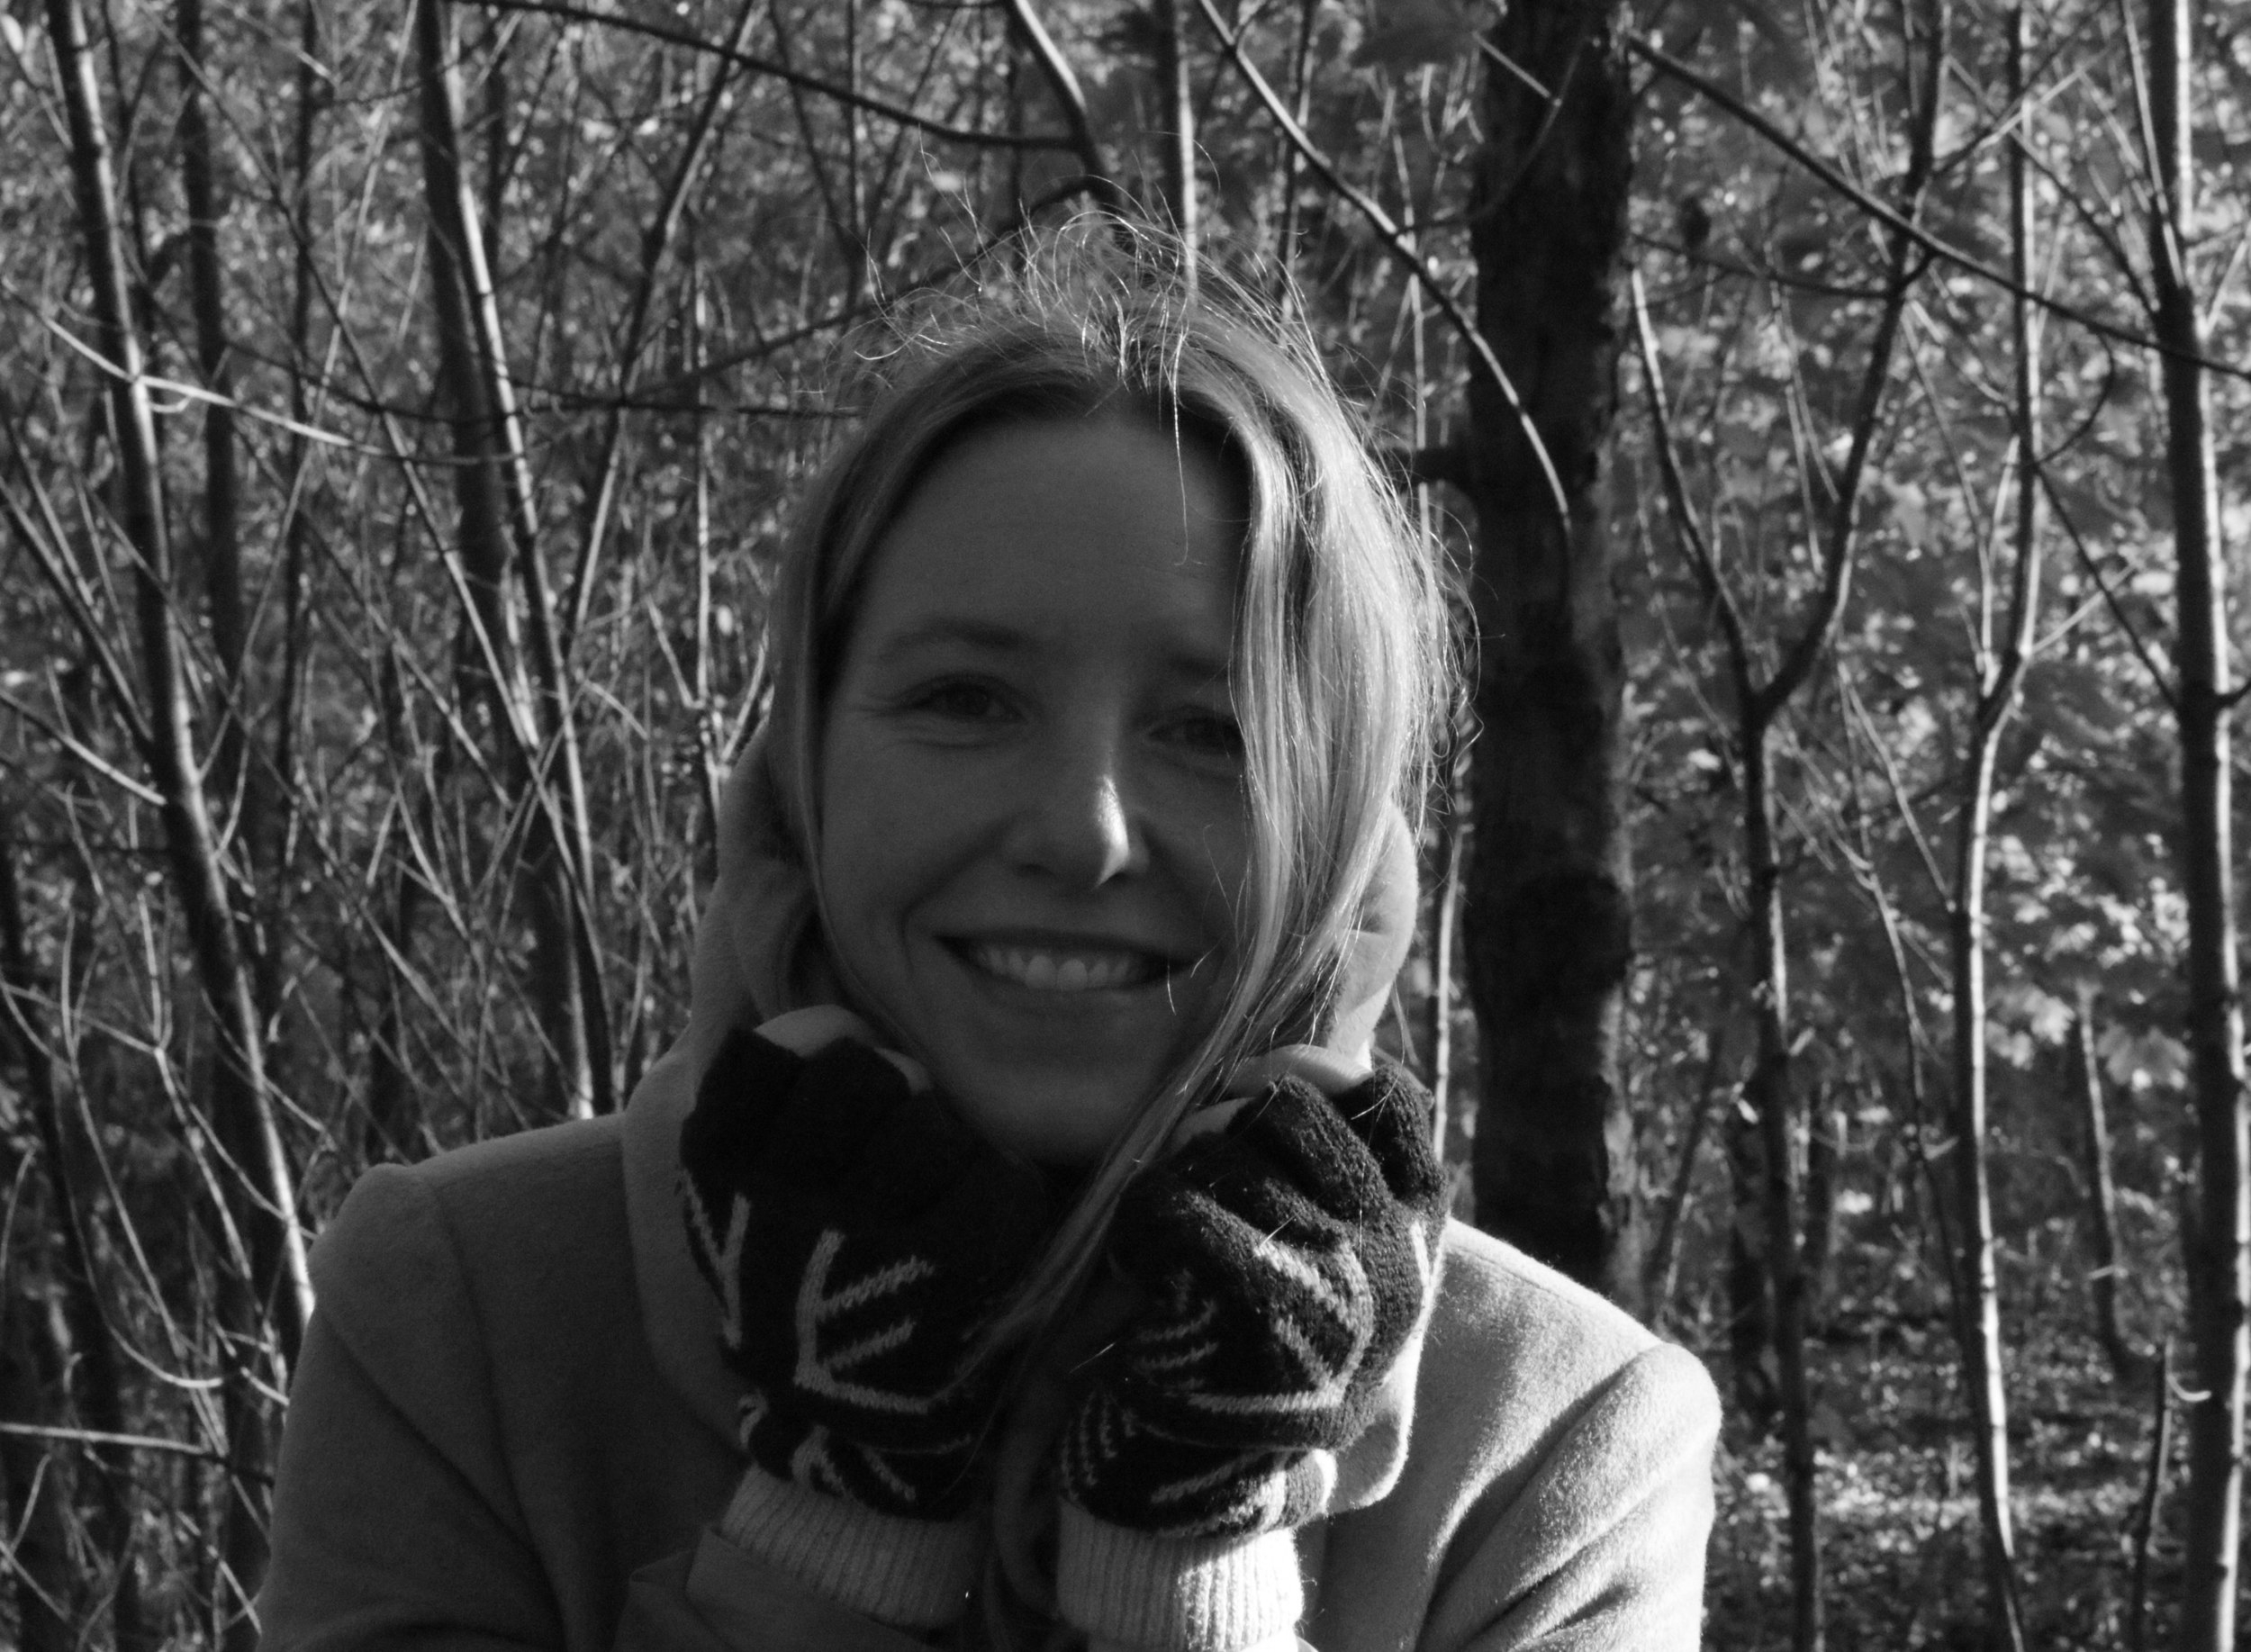 - JESSICA VAN LACHTEROPJessica Van Lachertop is a British film-maker and audio-visual producer who, let's be honest, uses the camera for access to some of the most fascinating people and 'who knew' topics on this bewildering and bedazzling planet.